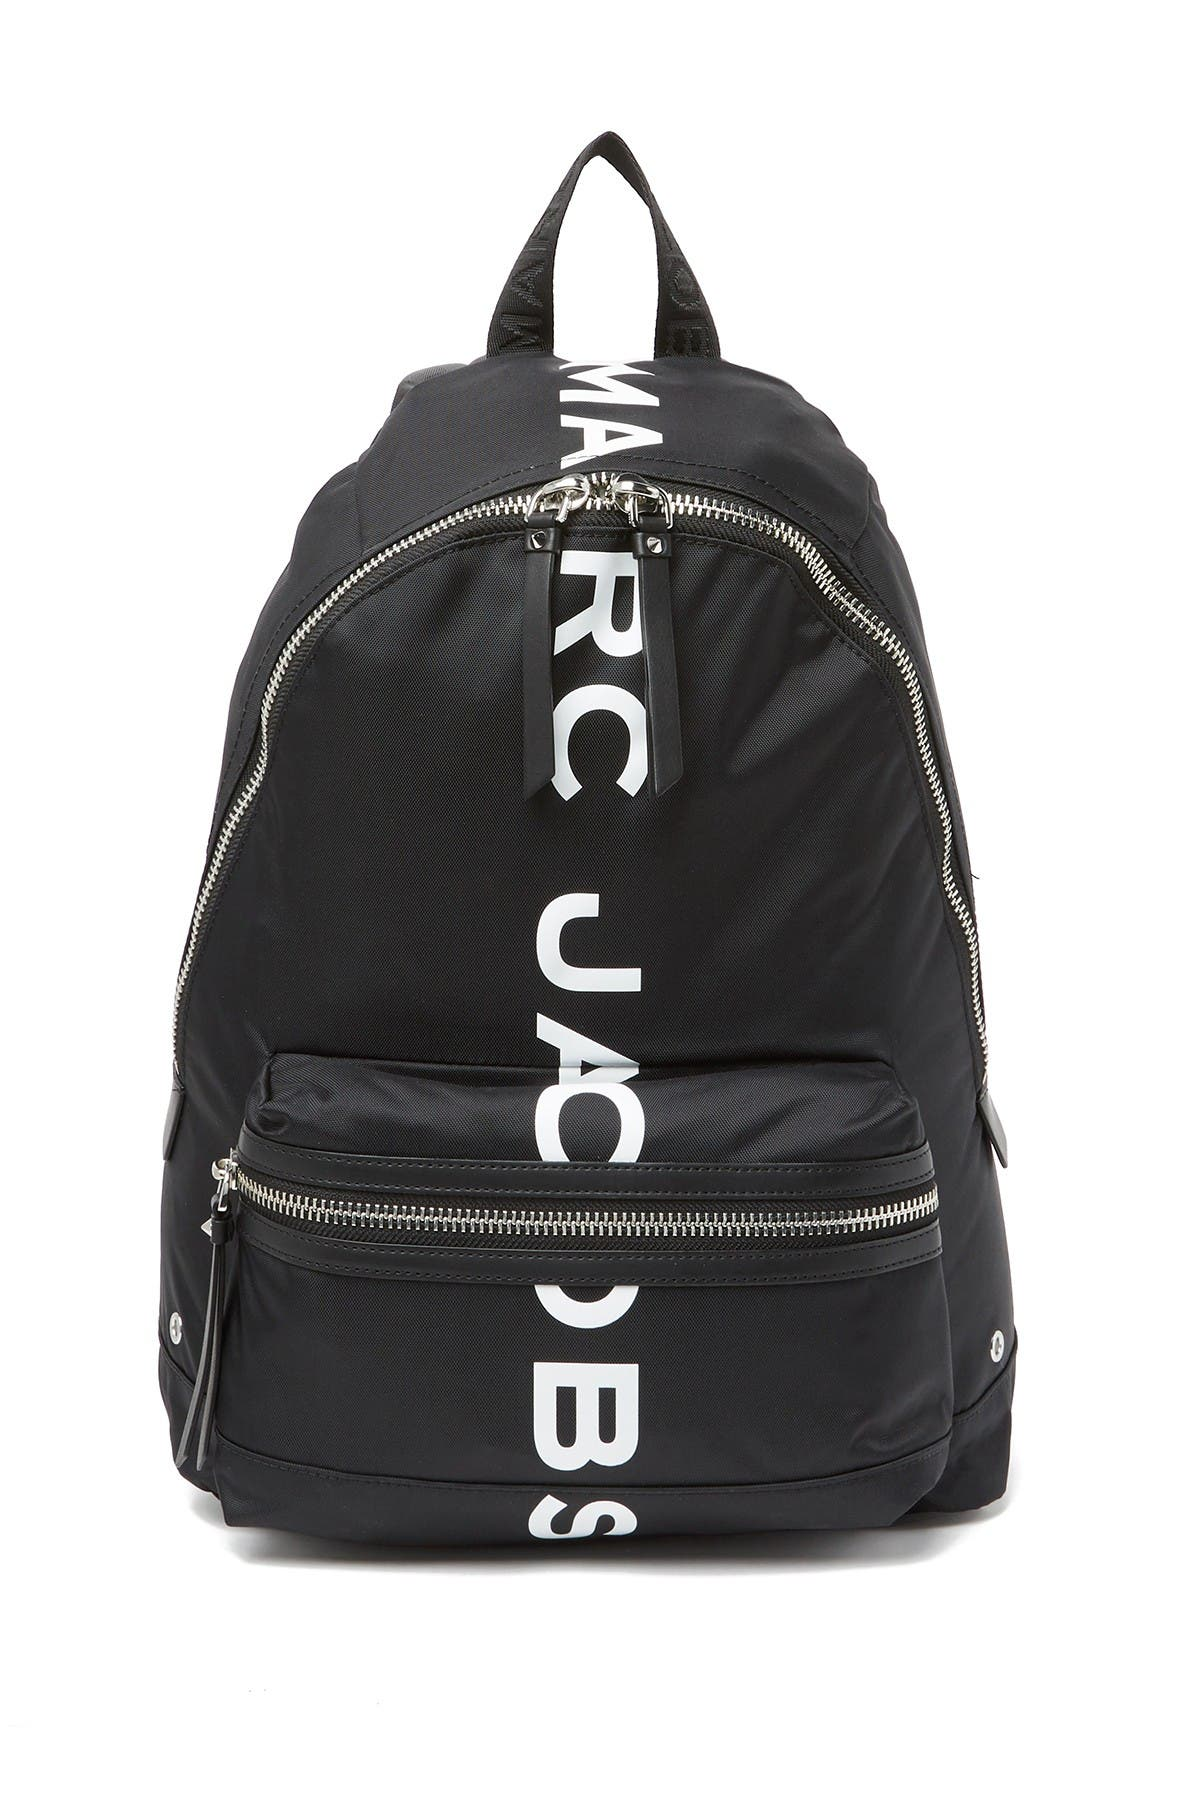 Image of Marc Jacobs Suspiria Logo Print Backpack